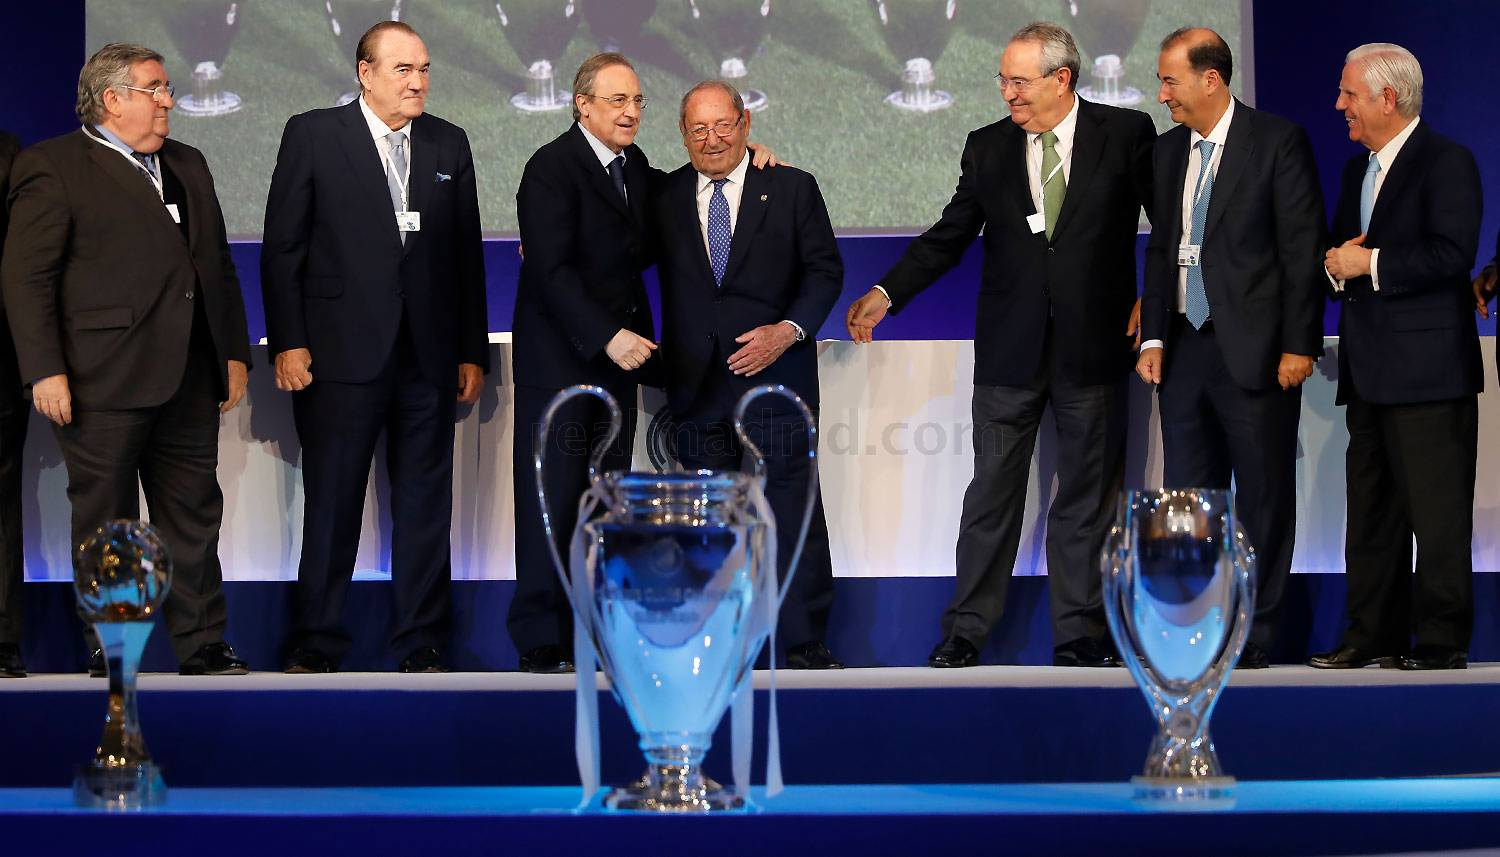 Real Madrid - Paco Gento, Presidente de Honor del Real Madrid - 23-10-2016